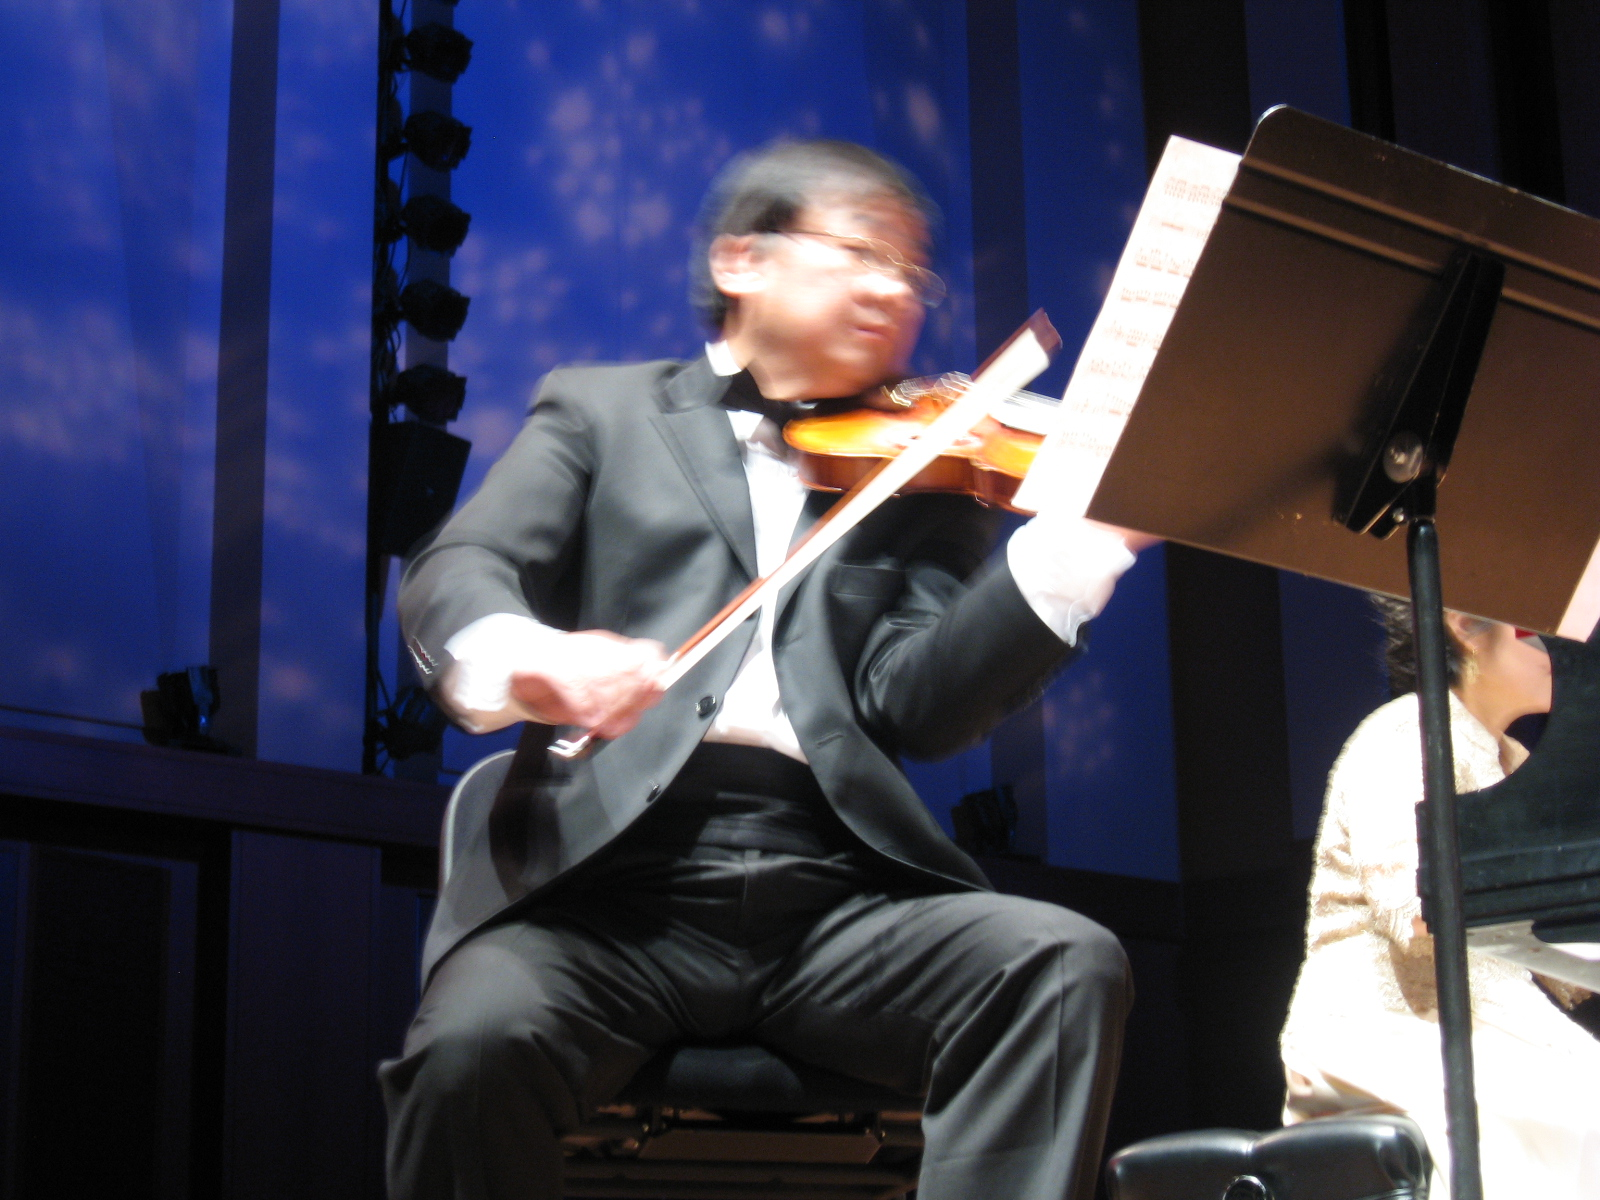 2010 Performance at Benaroya Hall Image 178